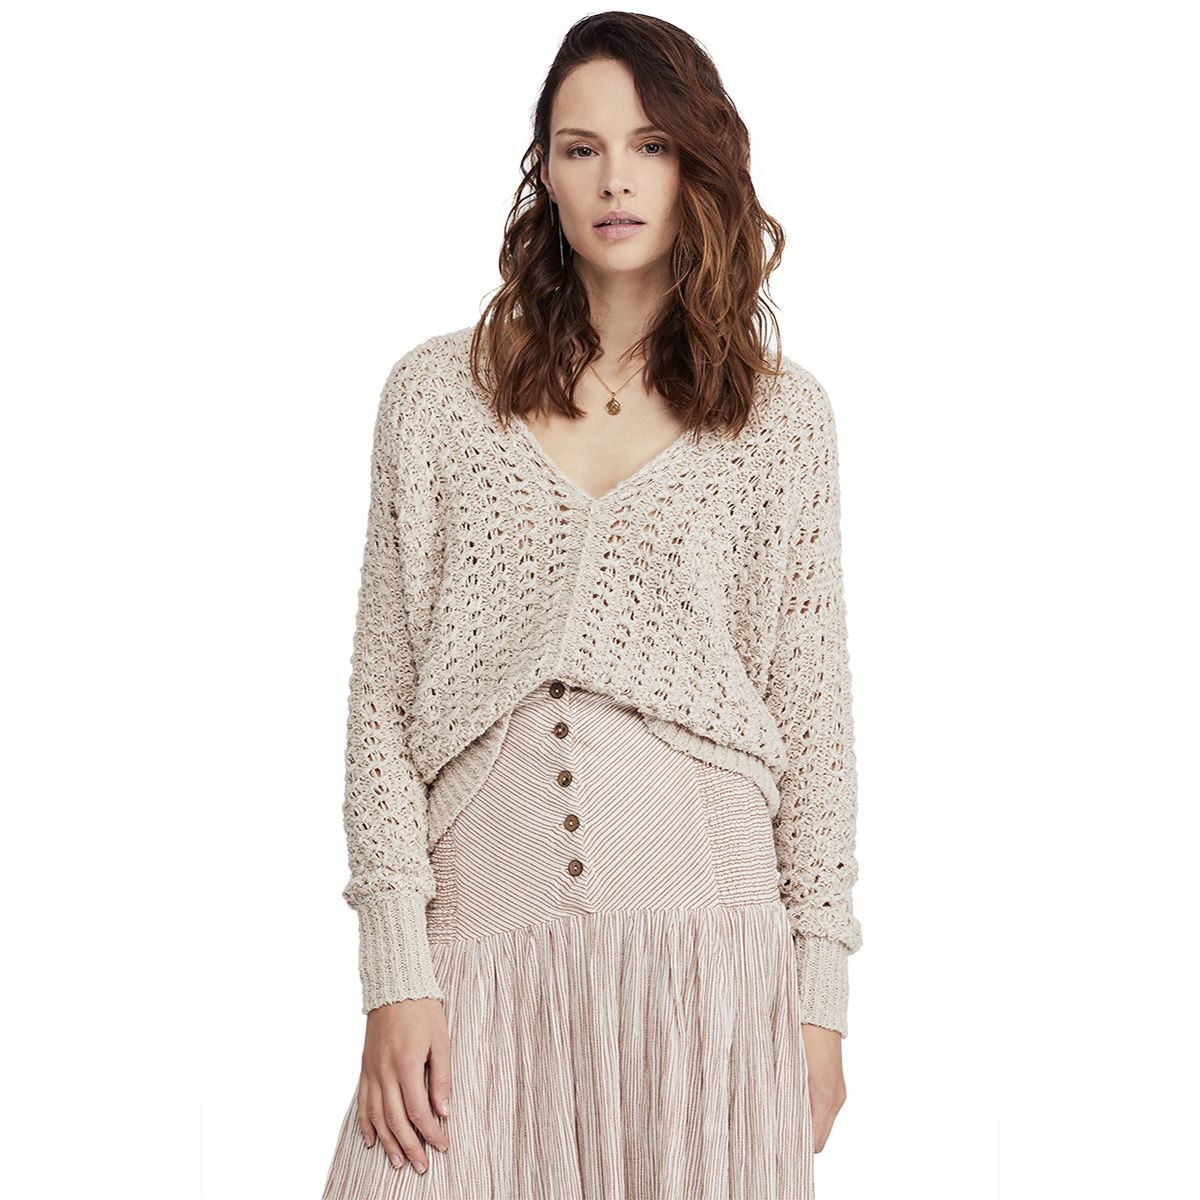 76c9b7ad235 Free People Clothing - Womens Apparel - Macy s